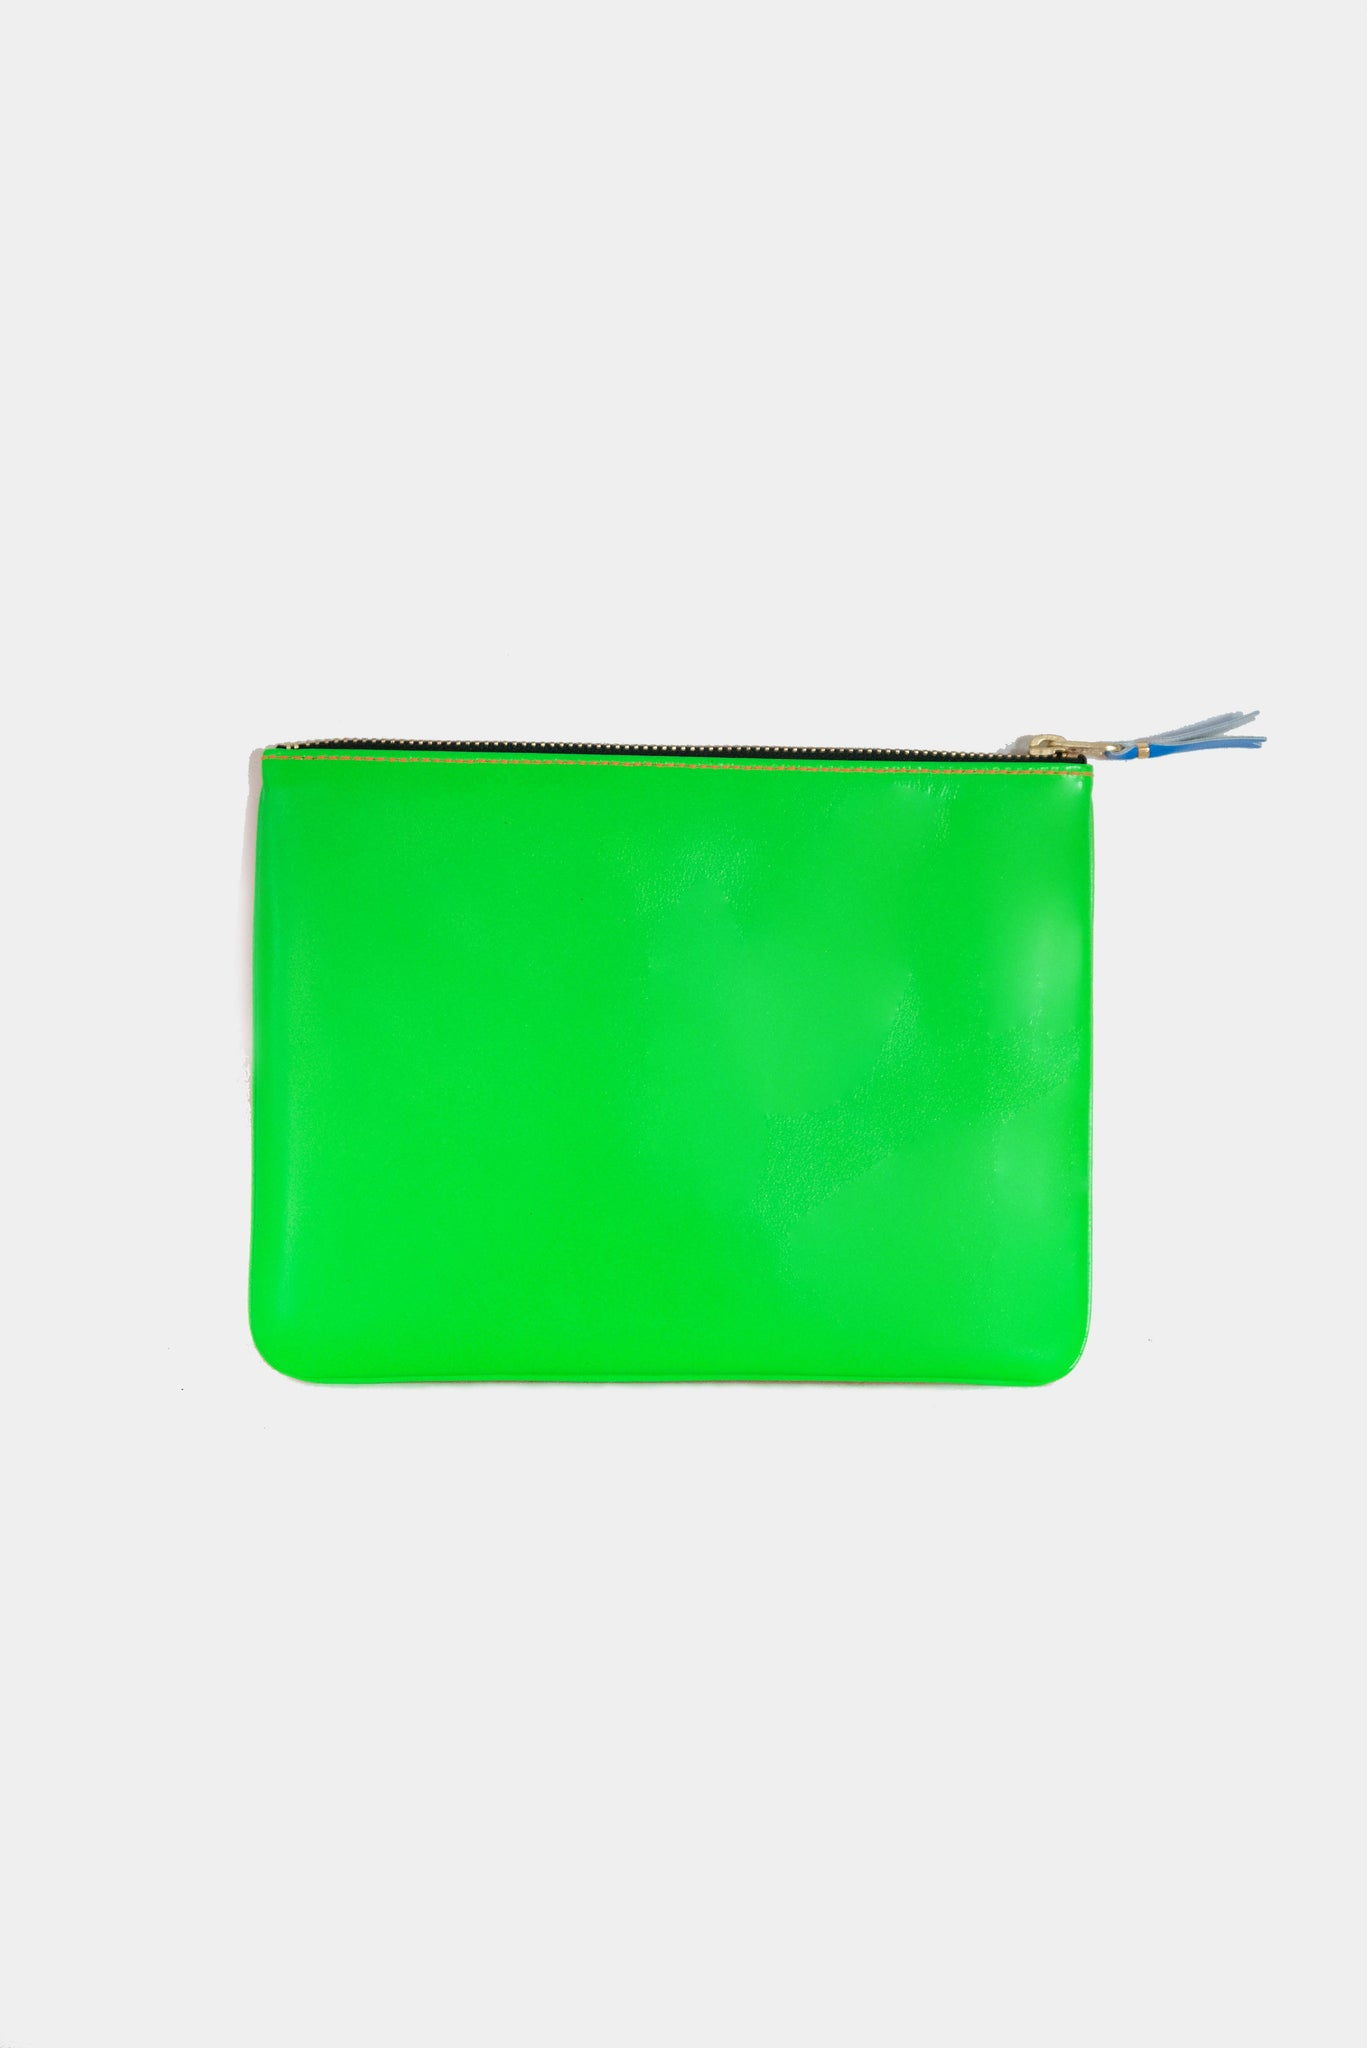 super fluo large pouch, green and orange